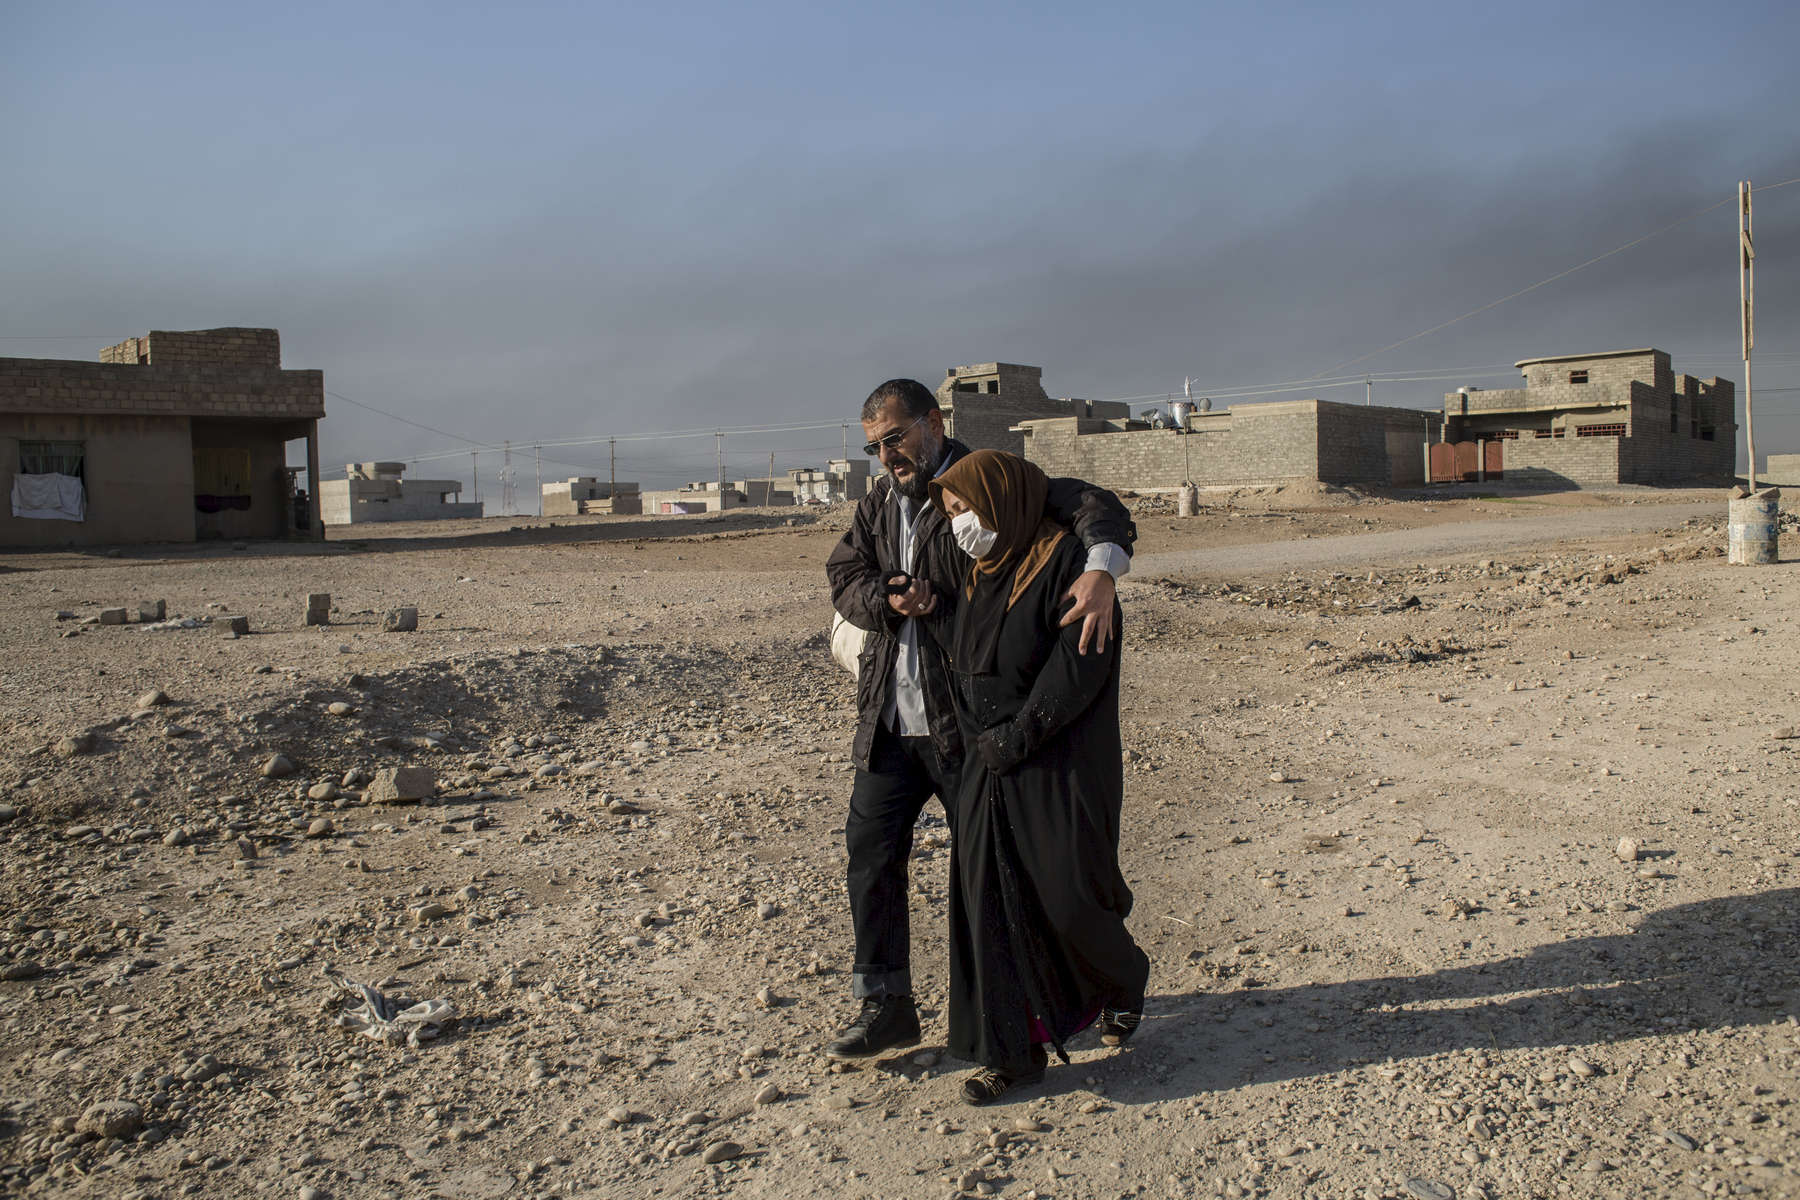 06/11/2016 -- Mosul, Iraq -- Iraqi family from Mosul leaving their hous after Iraqi special forces liberated the neighbourhoods in east of Mosul.